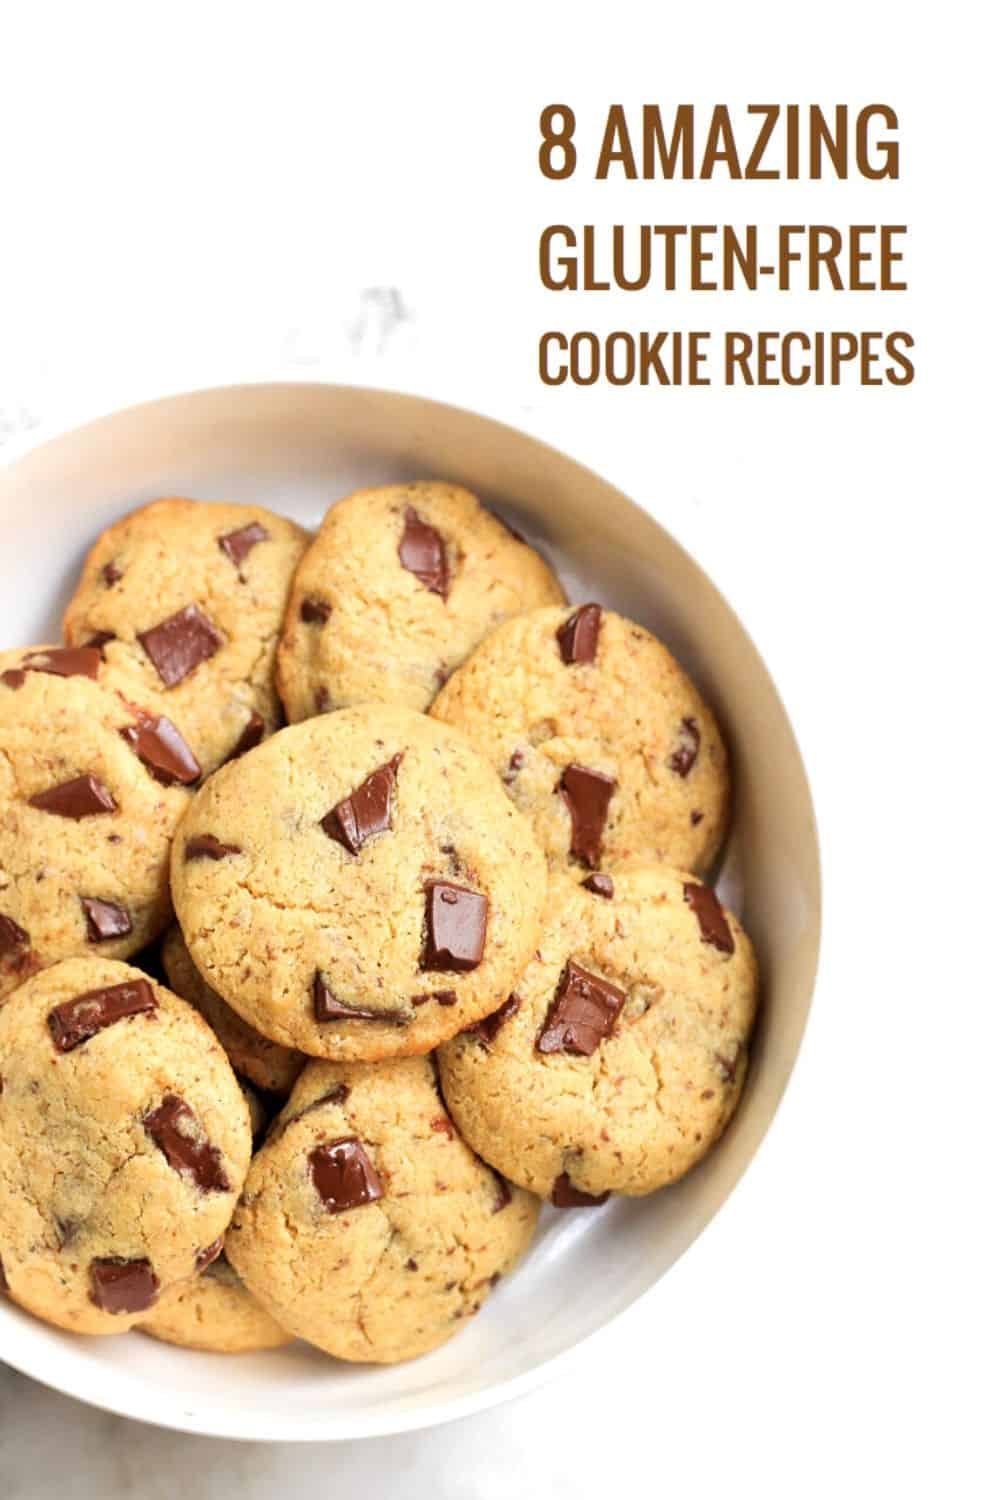 8 Amazing Gluten-Free Cookie Recipes